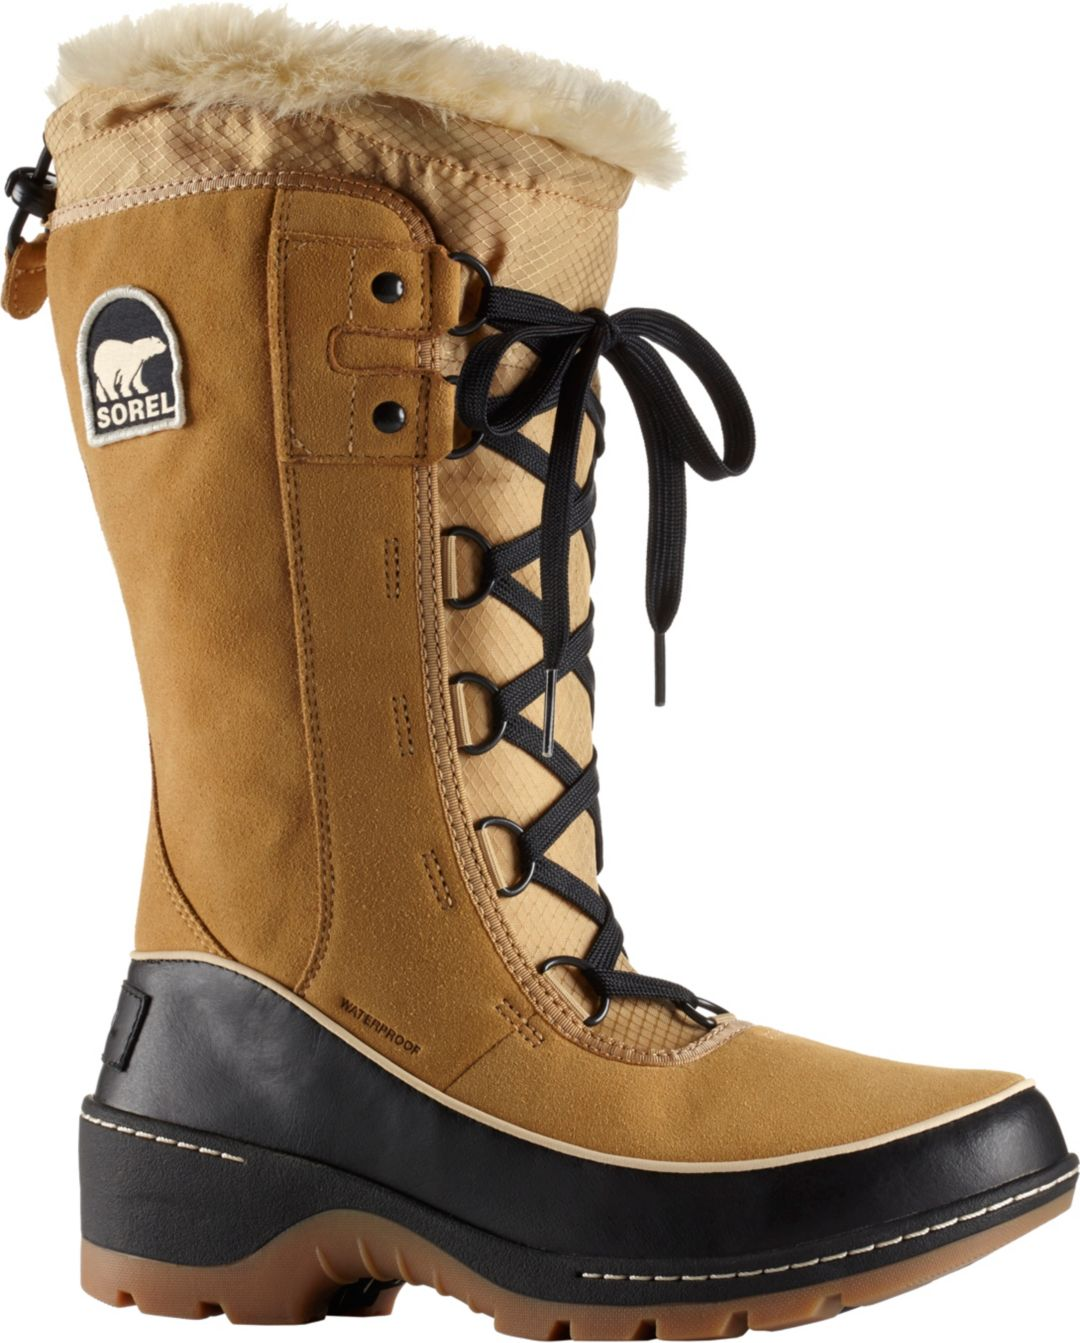 1867050d9 SOREL Women's Tivoli III High Waterproof Winter Boots